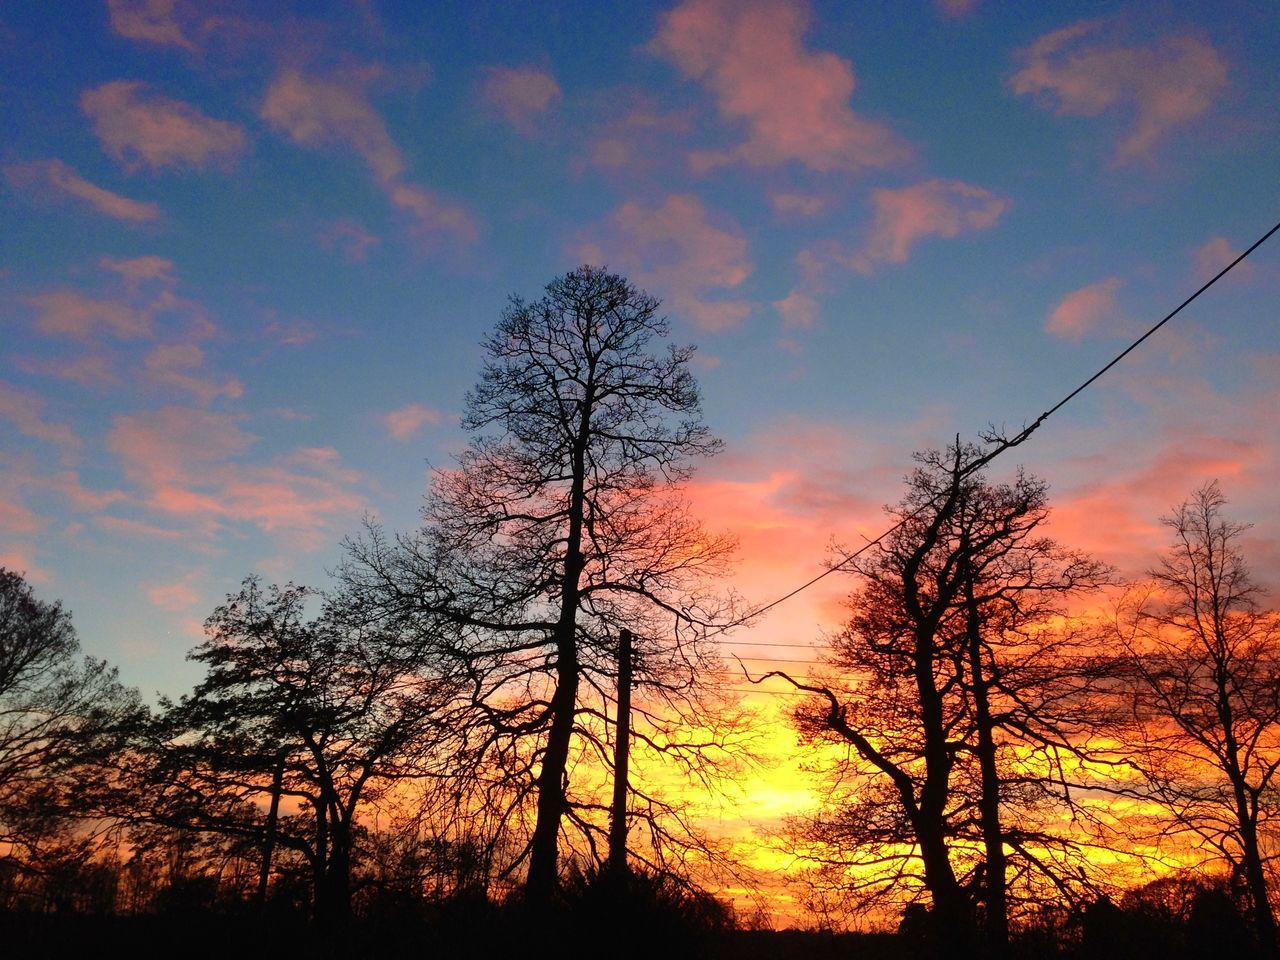 tree, sunset, nature, beauty in nature, tranquil scene, tranquility, sky, scenics, silhouette, orange color, no people, low angle view, majestic, outdoors, cloud - sky, landscape, forest, bare tree, day